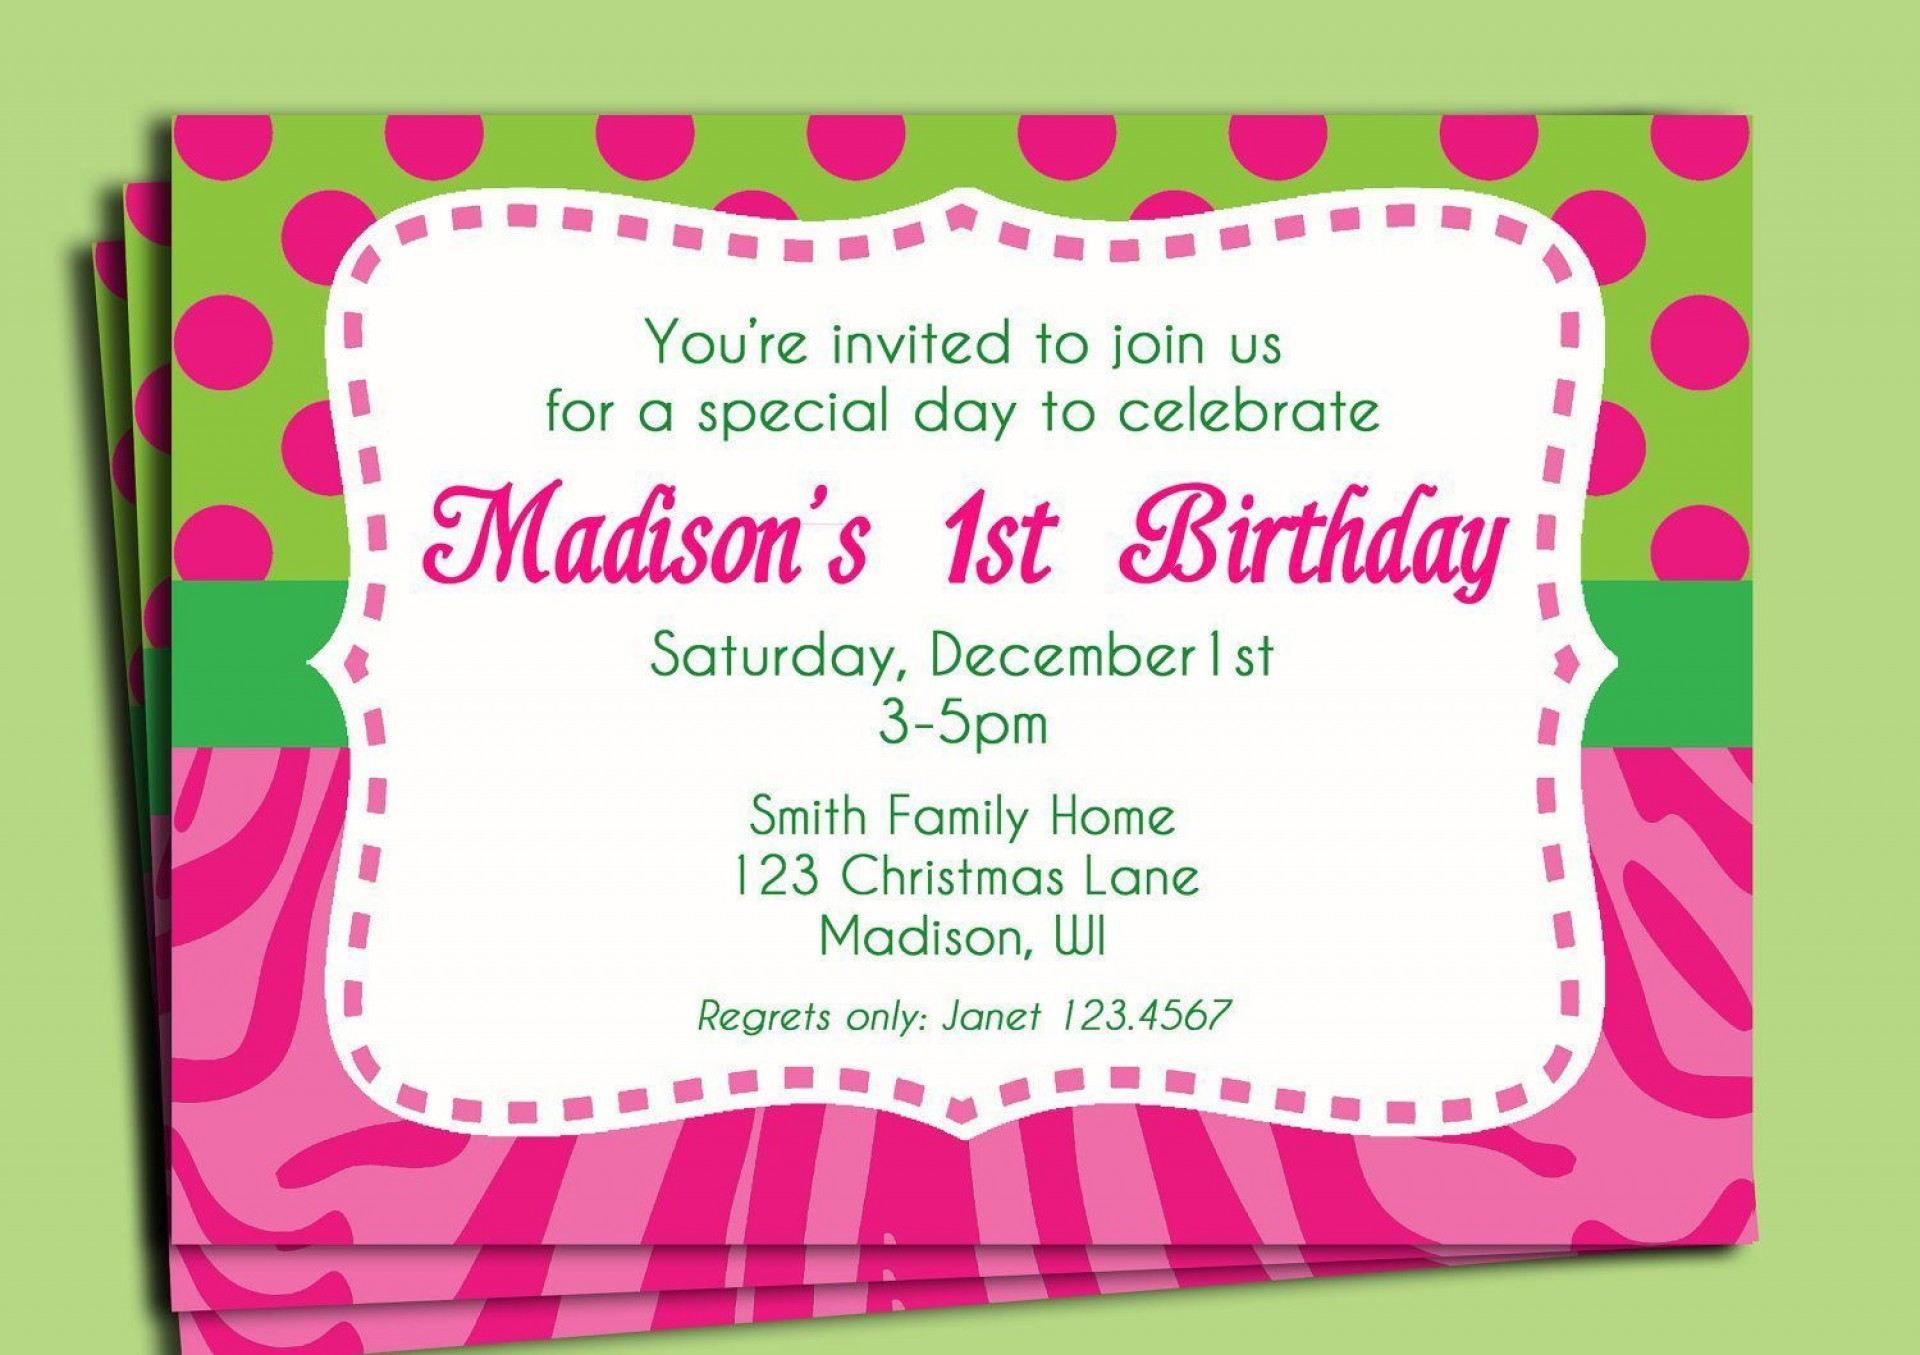 002 Magnificent Birthday Invitation Wording Sample 5 Year Old High Definition 1920